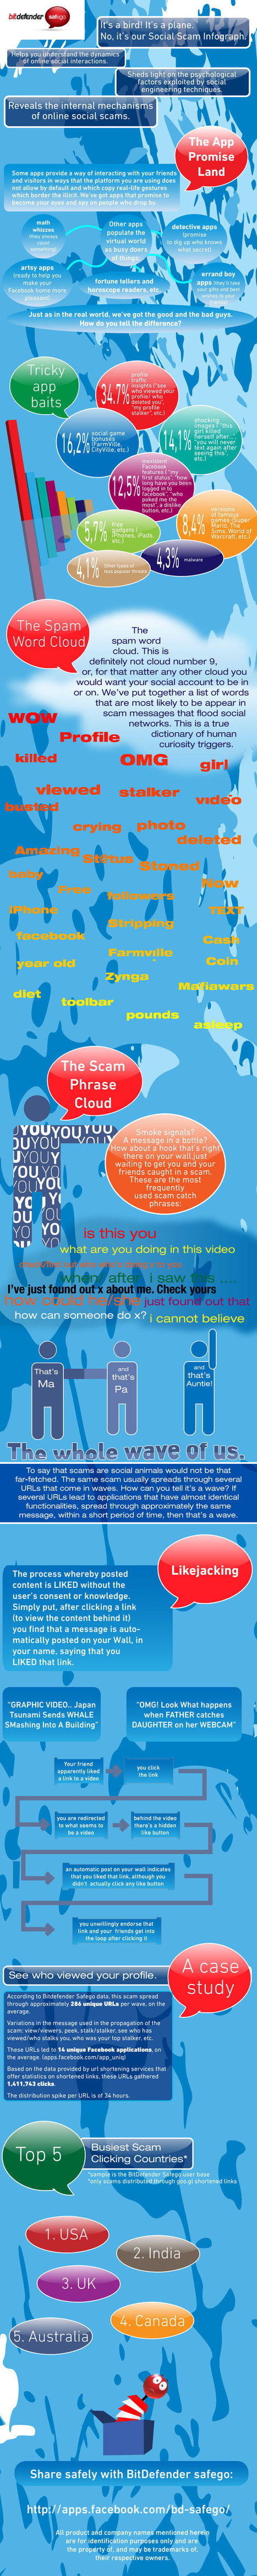 [Infographic] Top Scams on Facebook | How to Market Your Small Business | Scoop.it